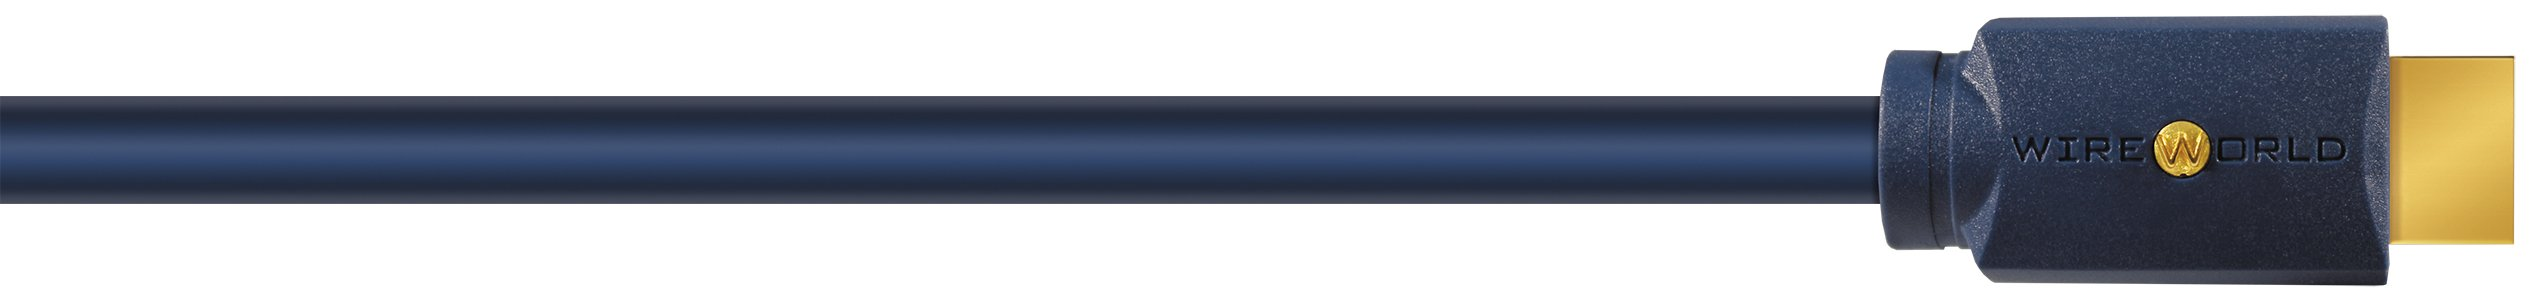 WIREWORLD Sphere HDMI Audio/Video 4K/18Gbps/HDR Cable - 12 Meters by Wireworld Cable Technology, Inc.